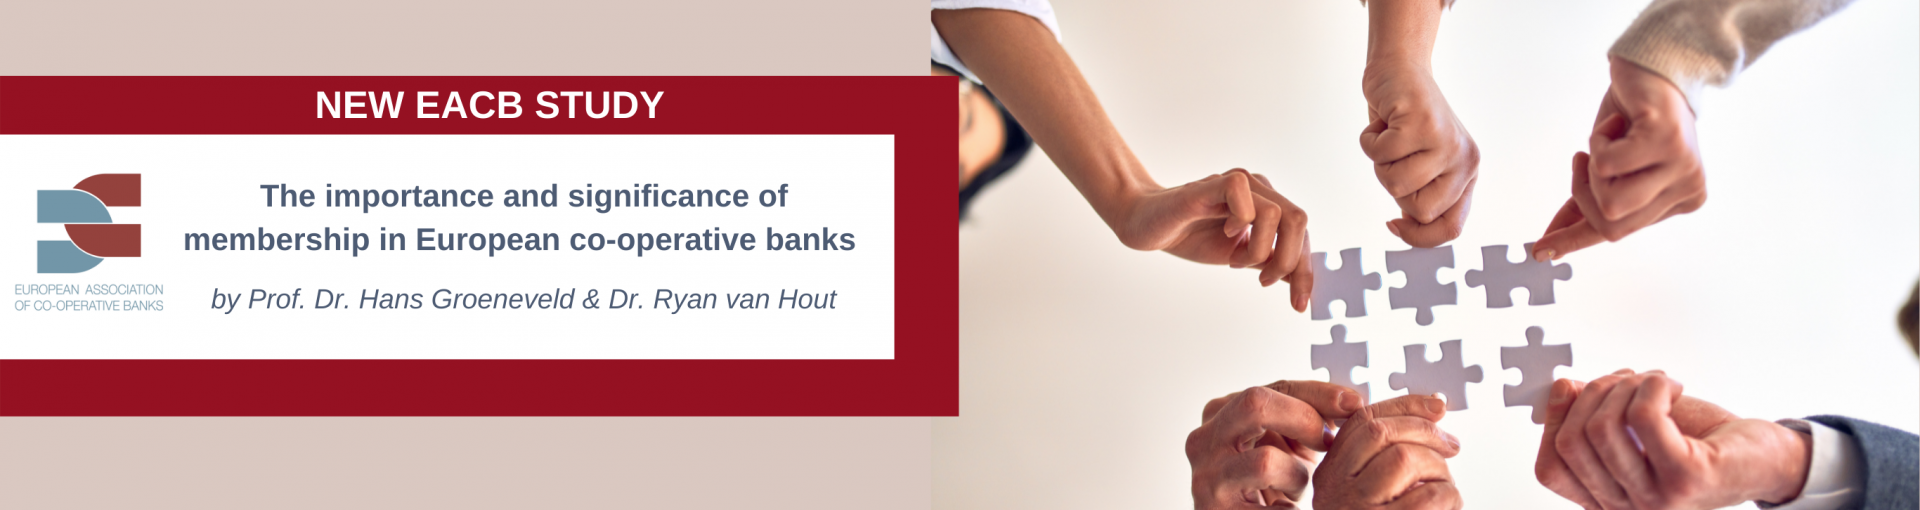 The importance and significance of membership in European co-operative banks